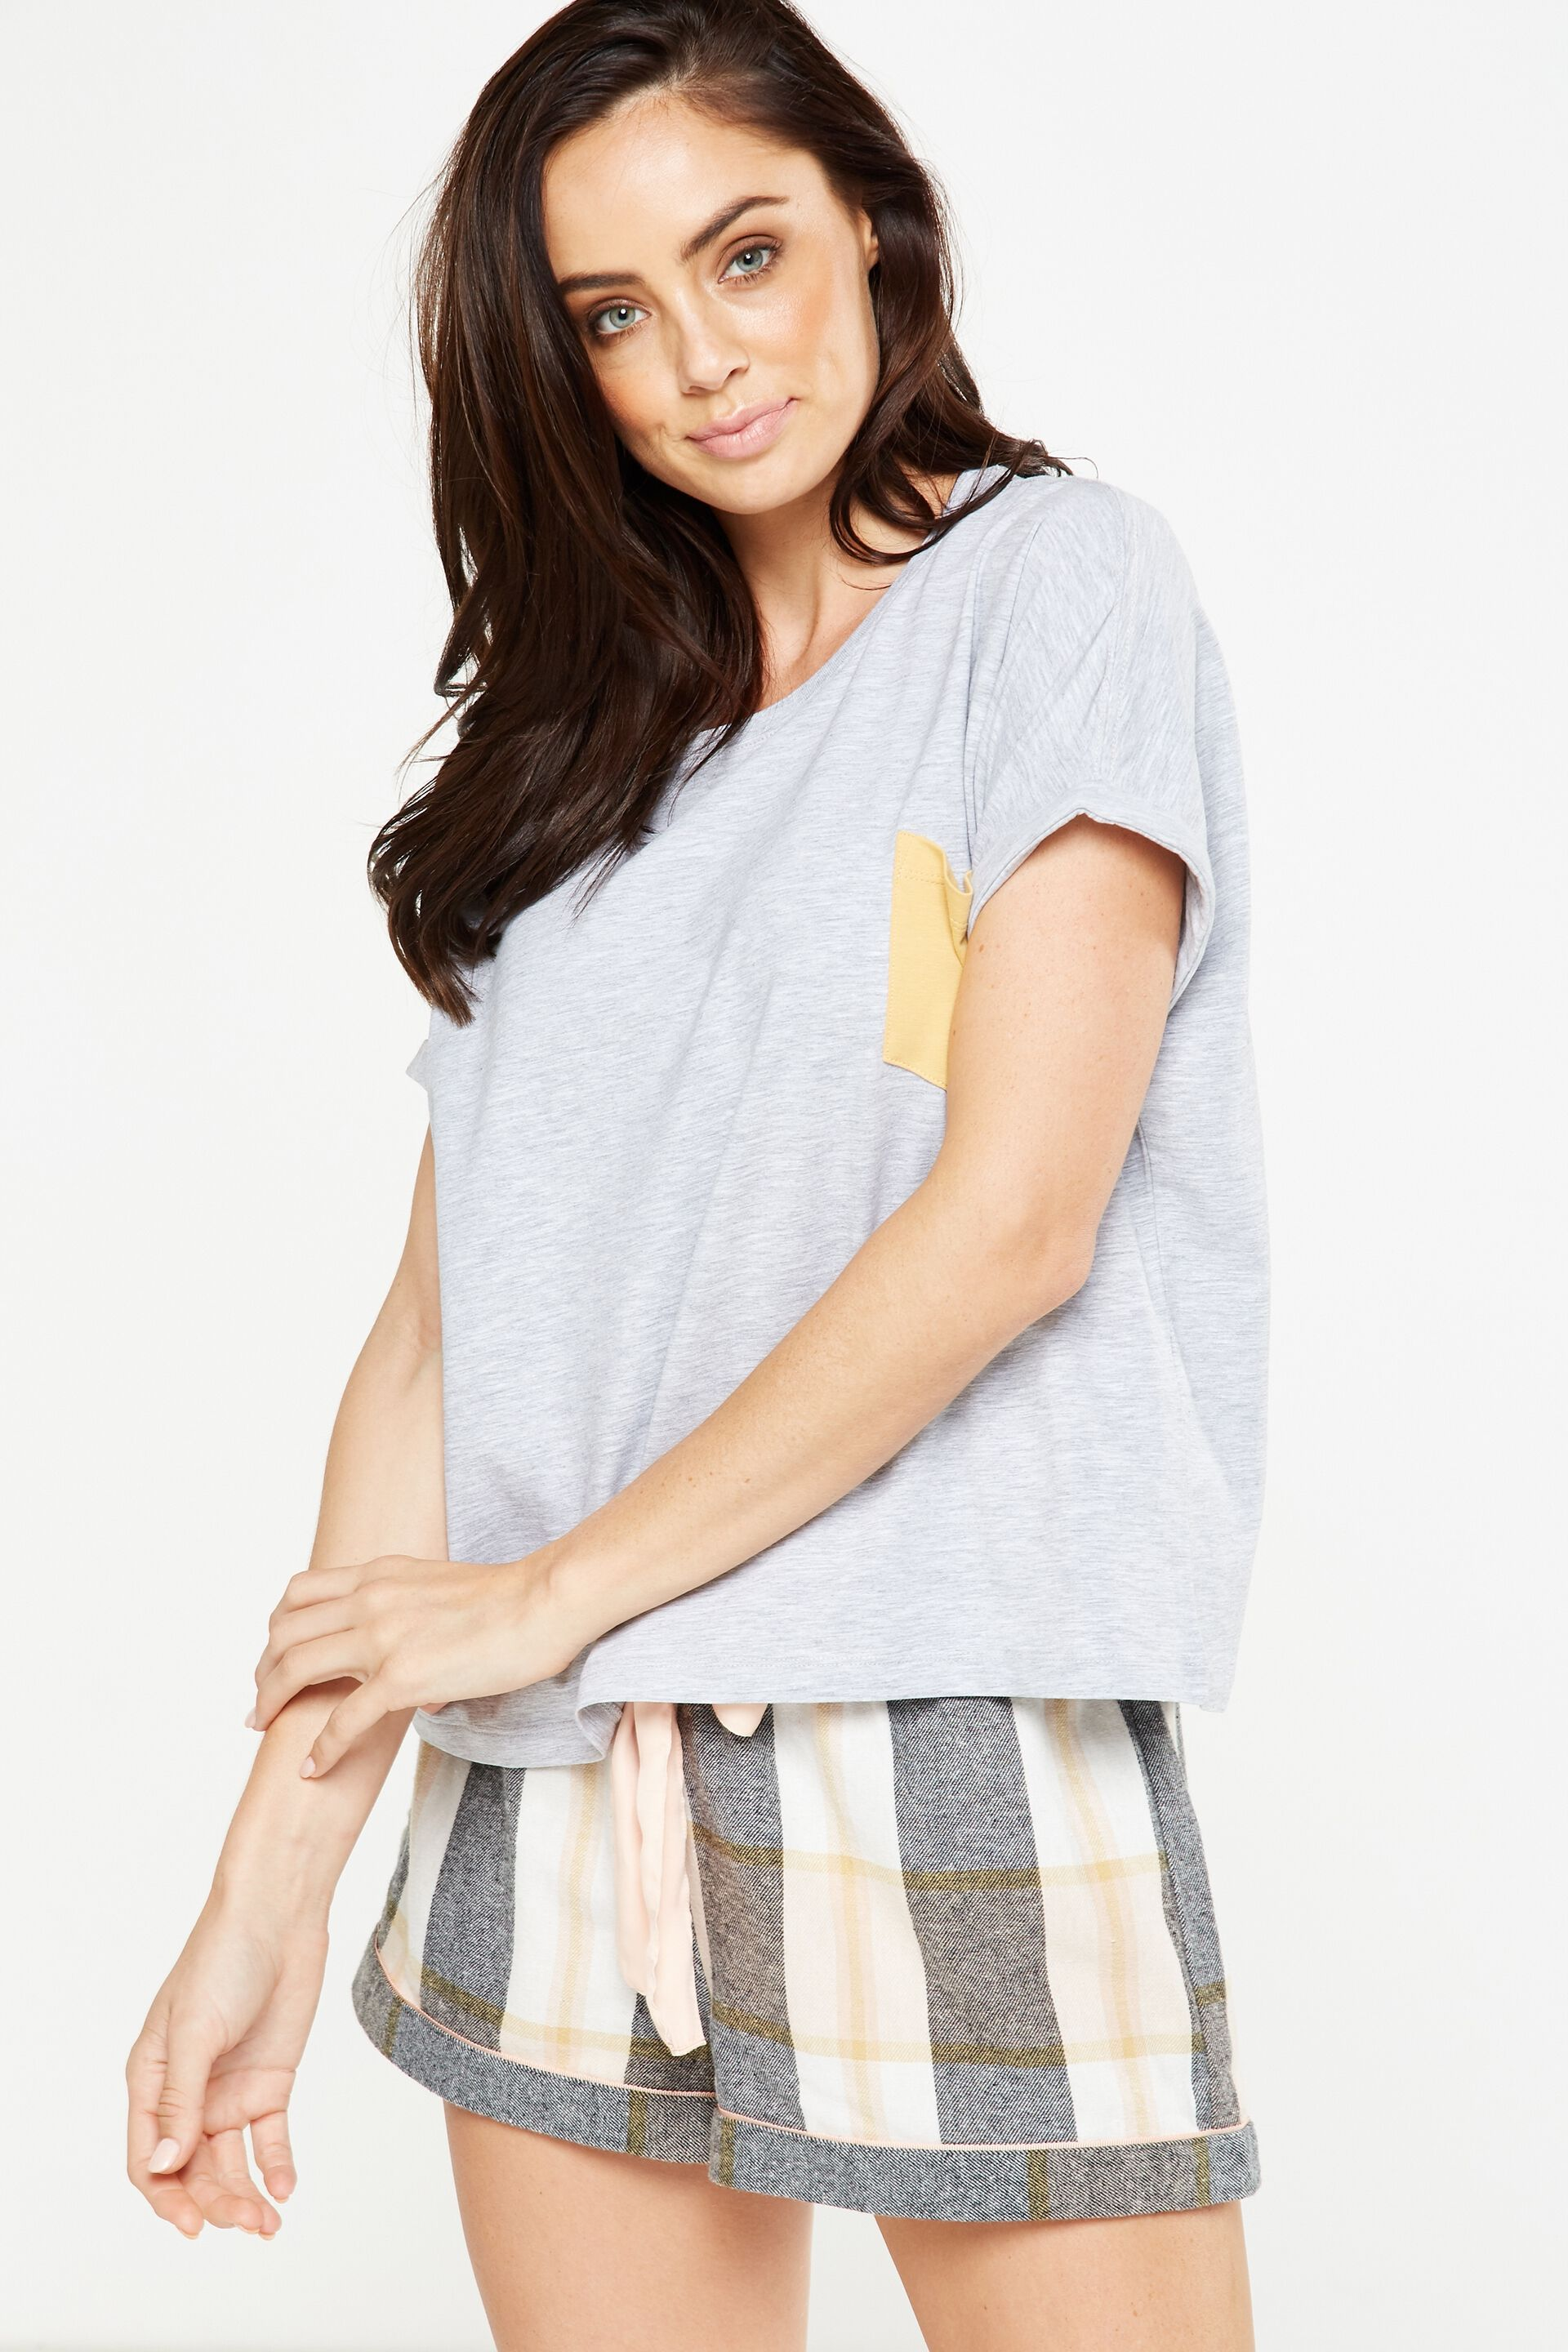 Short Stories Women's Pyjama Top - Off